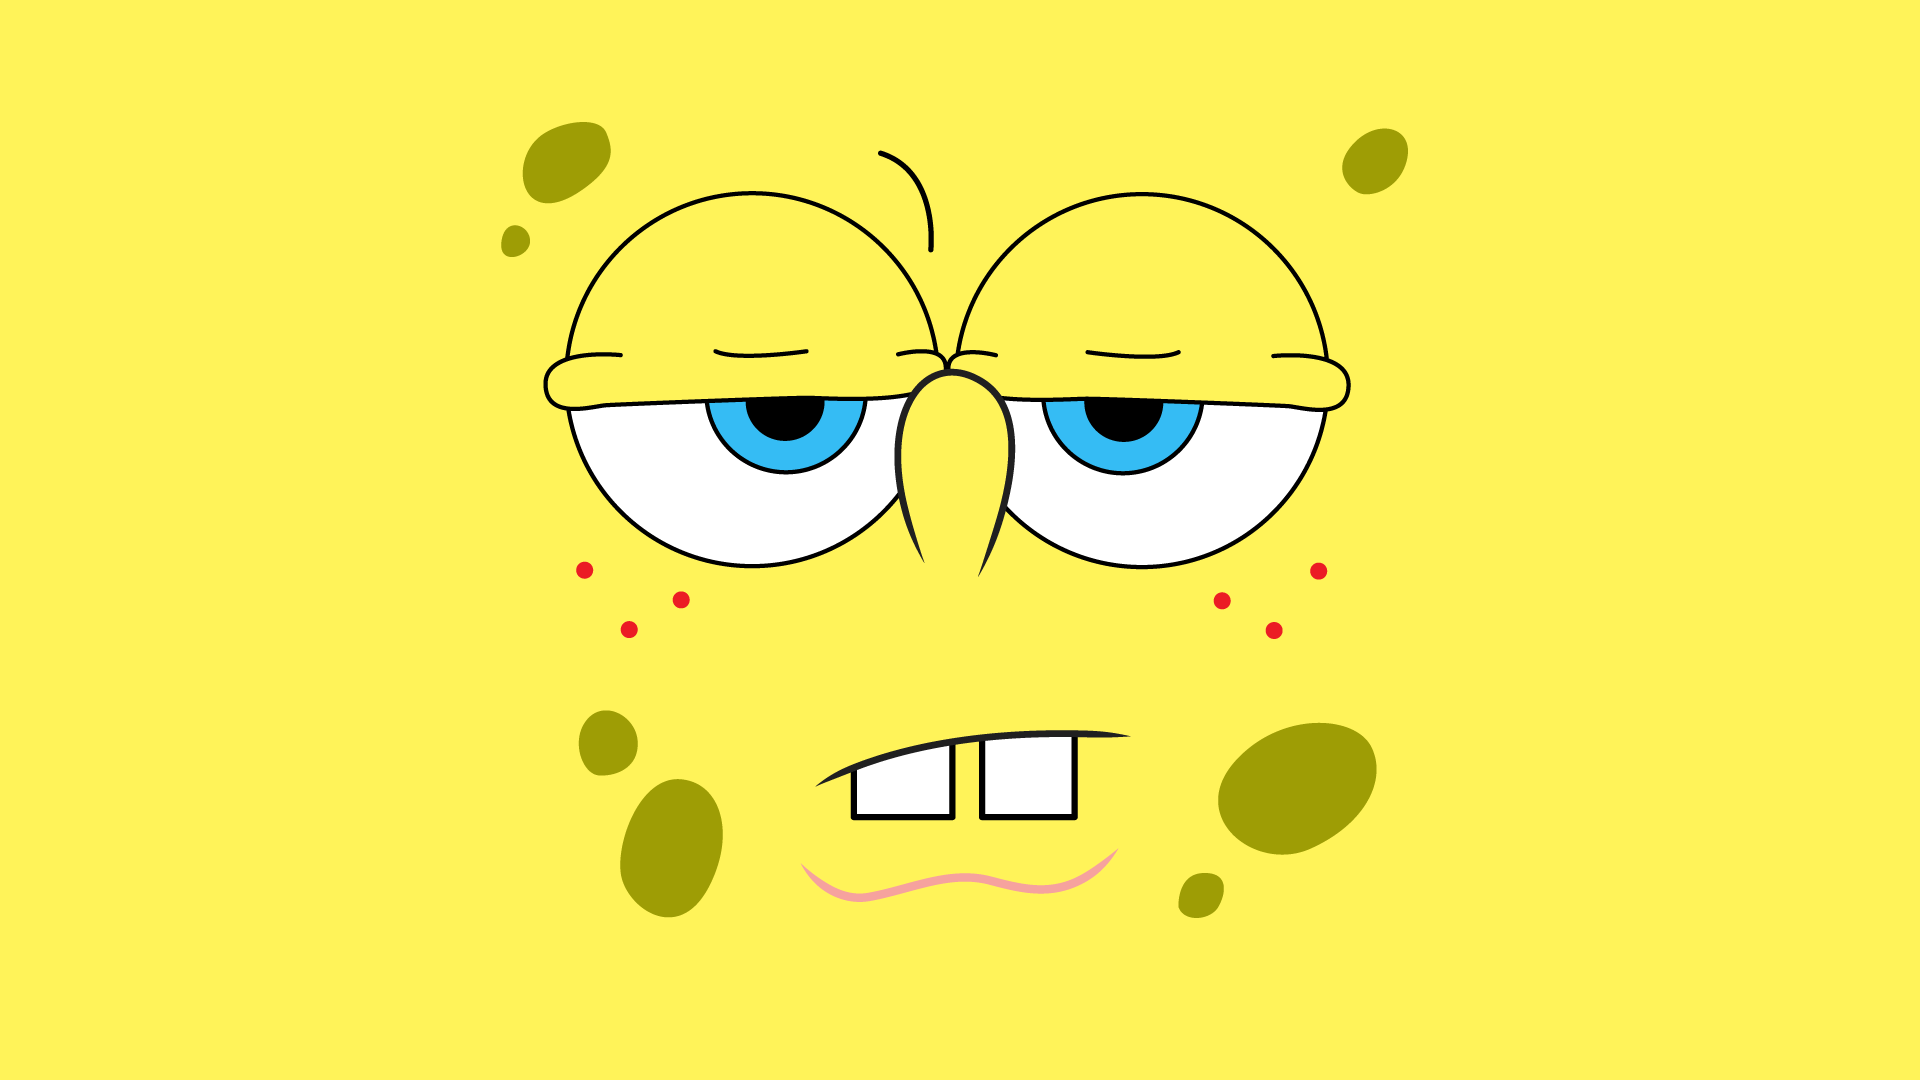 spongebob squarepants desktop wallpaper 49593 1920x1080 px